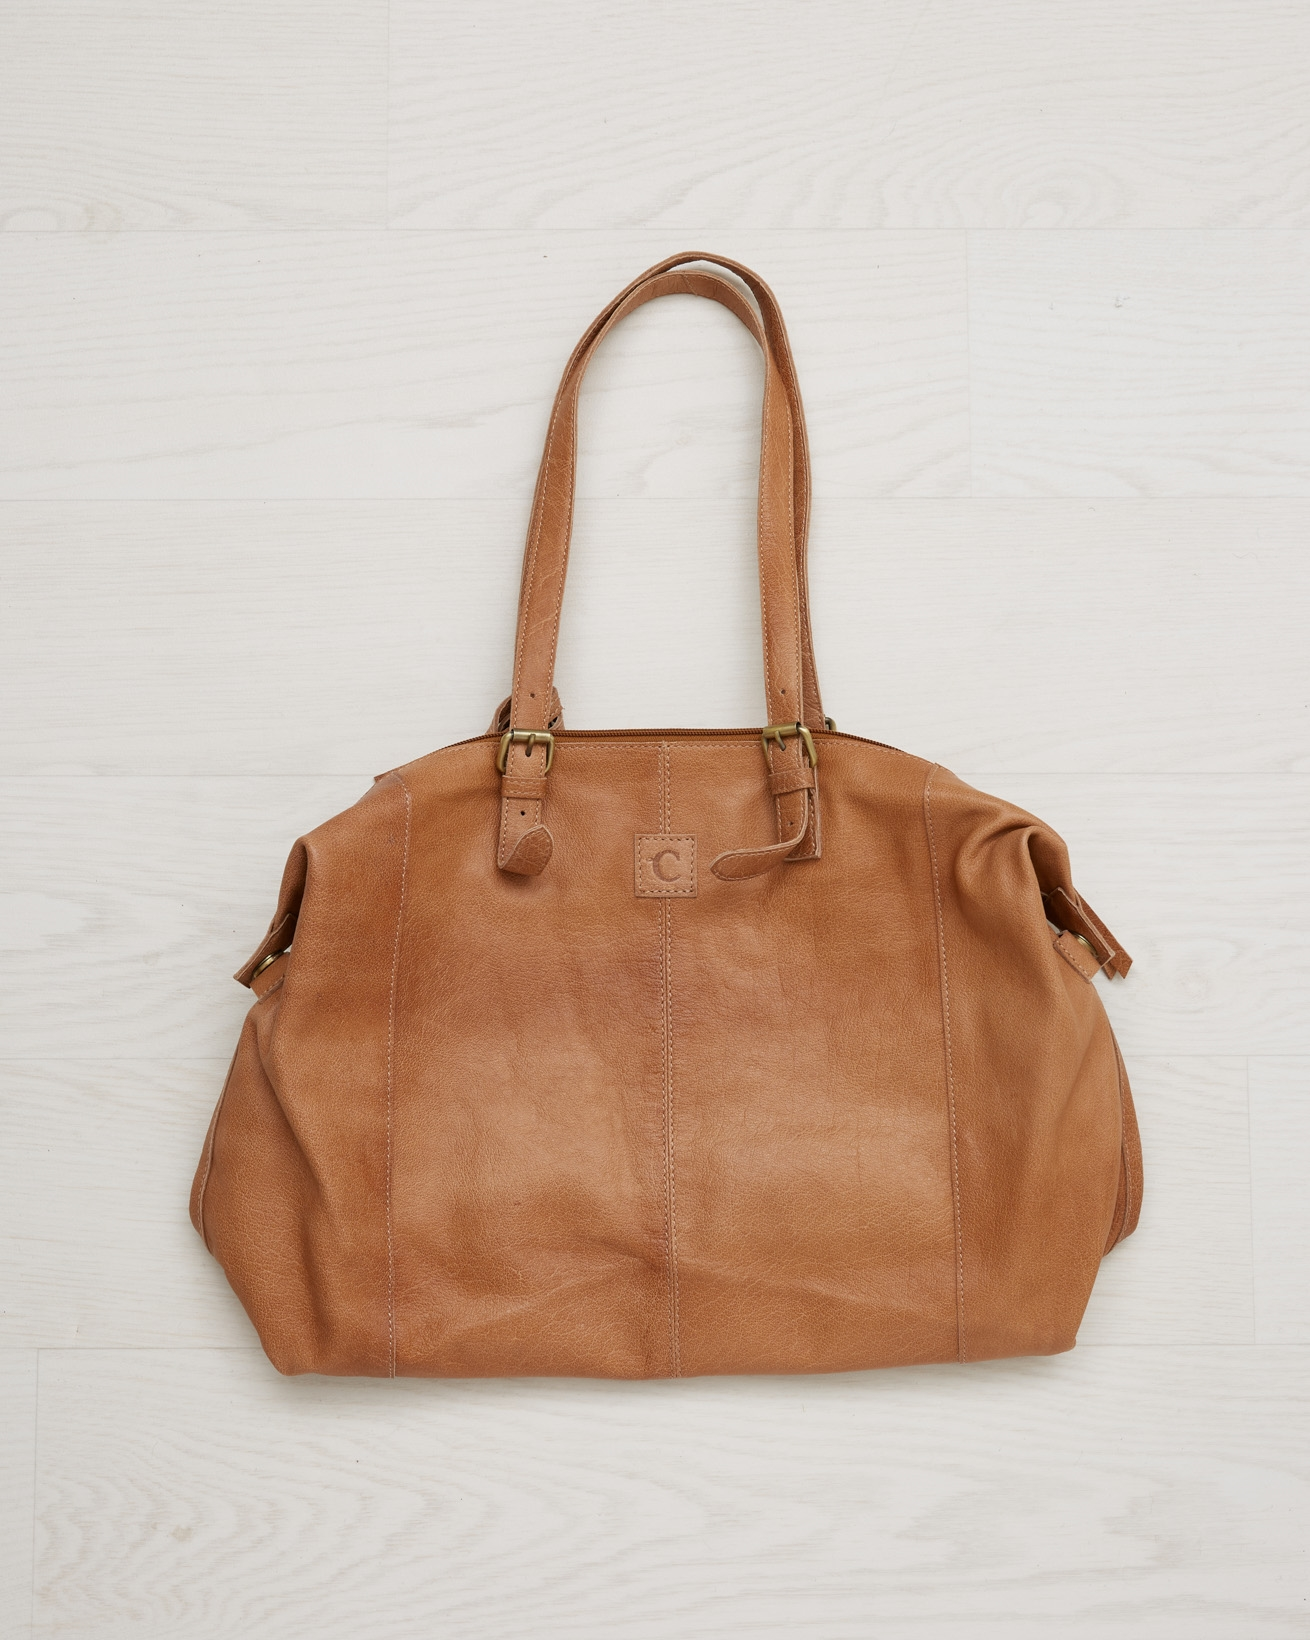 Leather Holdall Style Bag - Camel - One Size - 2566